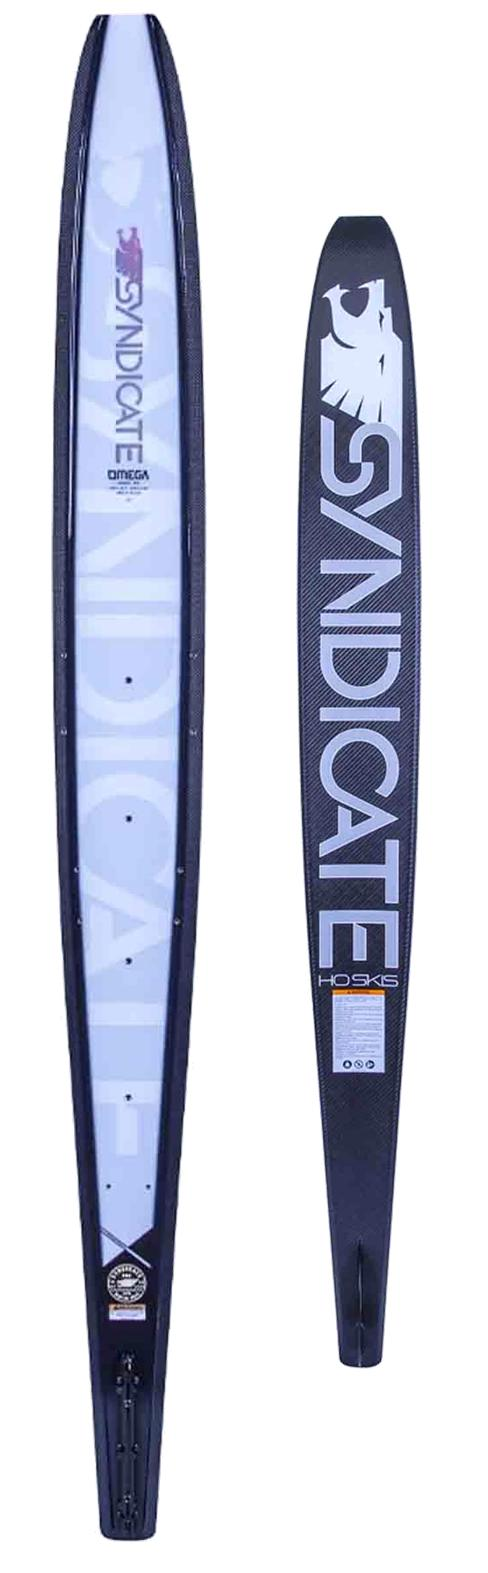 2020 HO Syndicate Omega slalom ski (SPECIAL PURCHASE) - ProSkiGuy your Hometown Ski Shop on the web